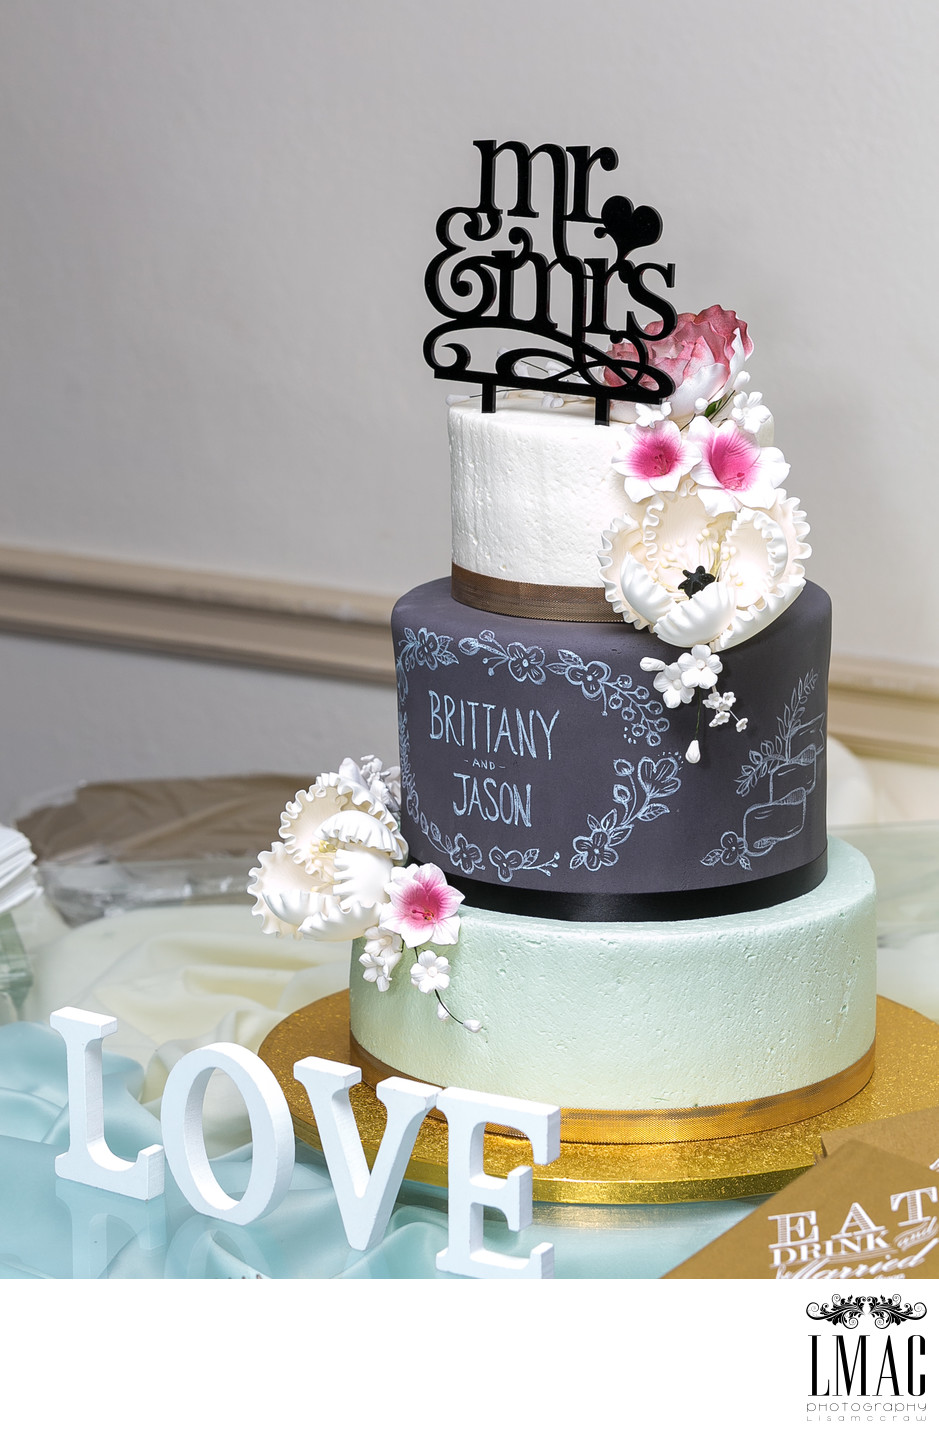 Gorgeous Wedding Cakes Make for Beautiful Wedding Photography